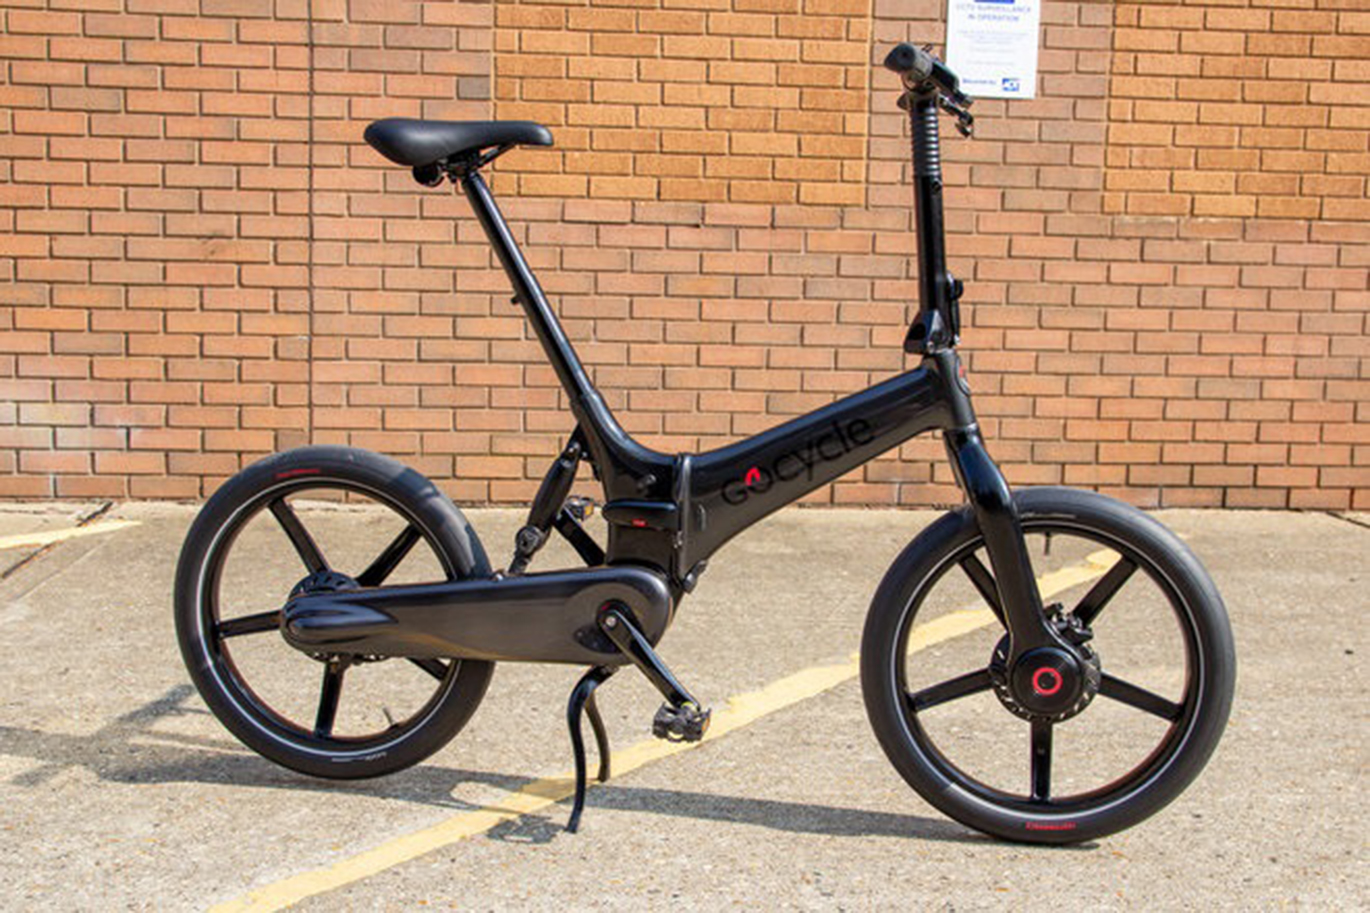 Gocycle G4i e-bike's product review